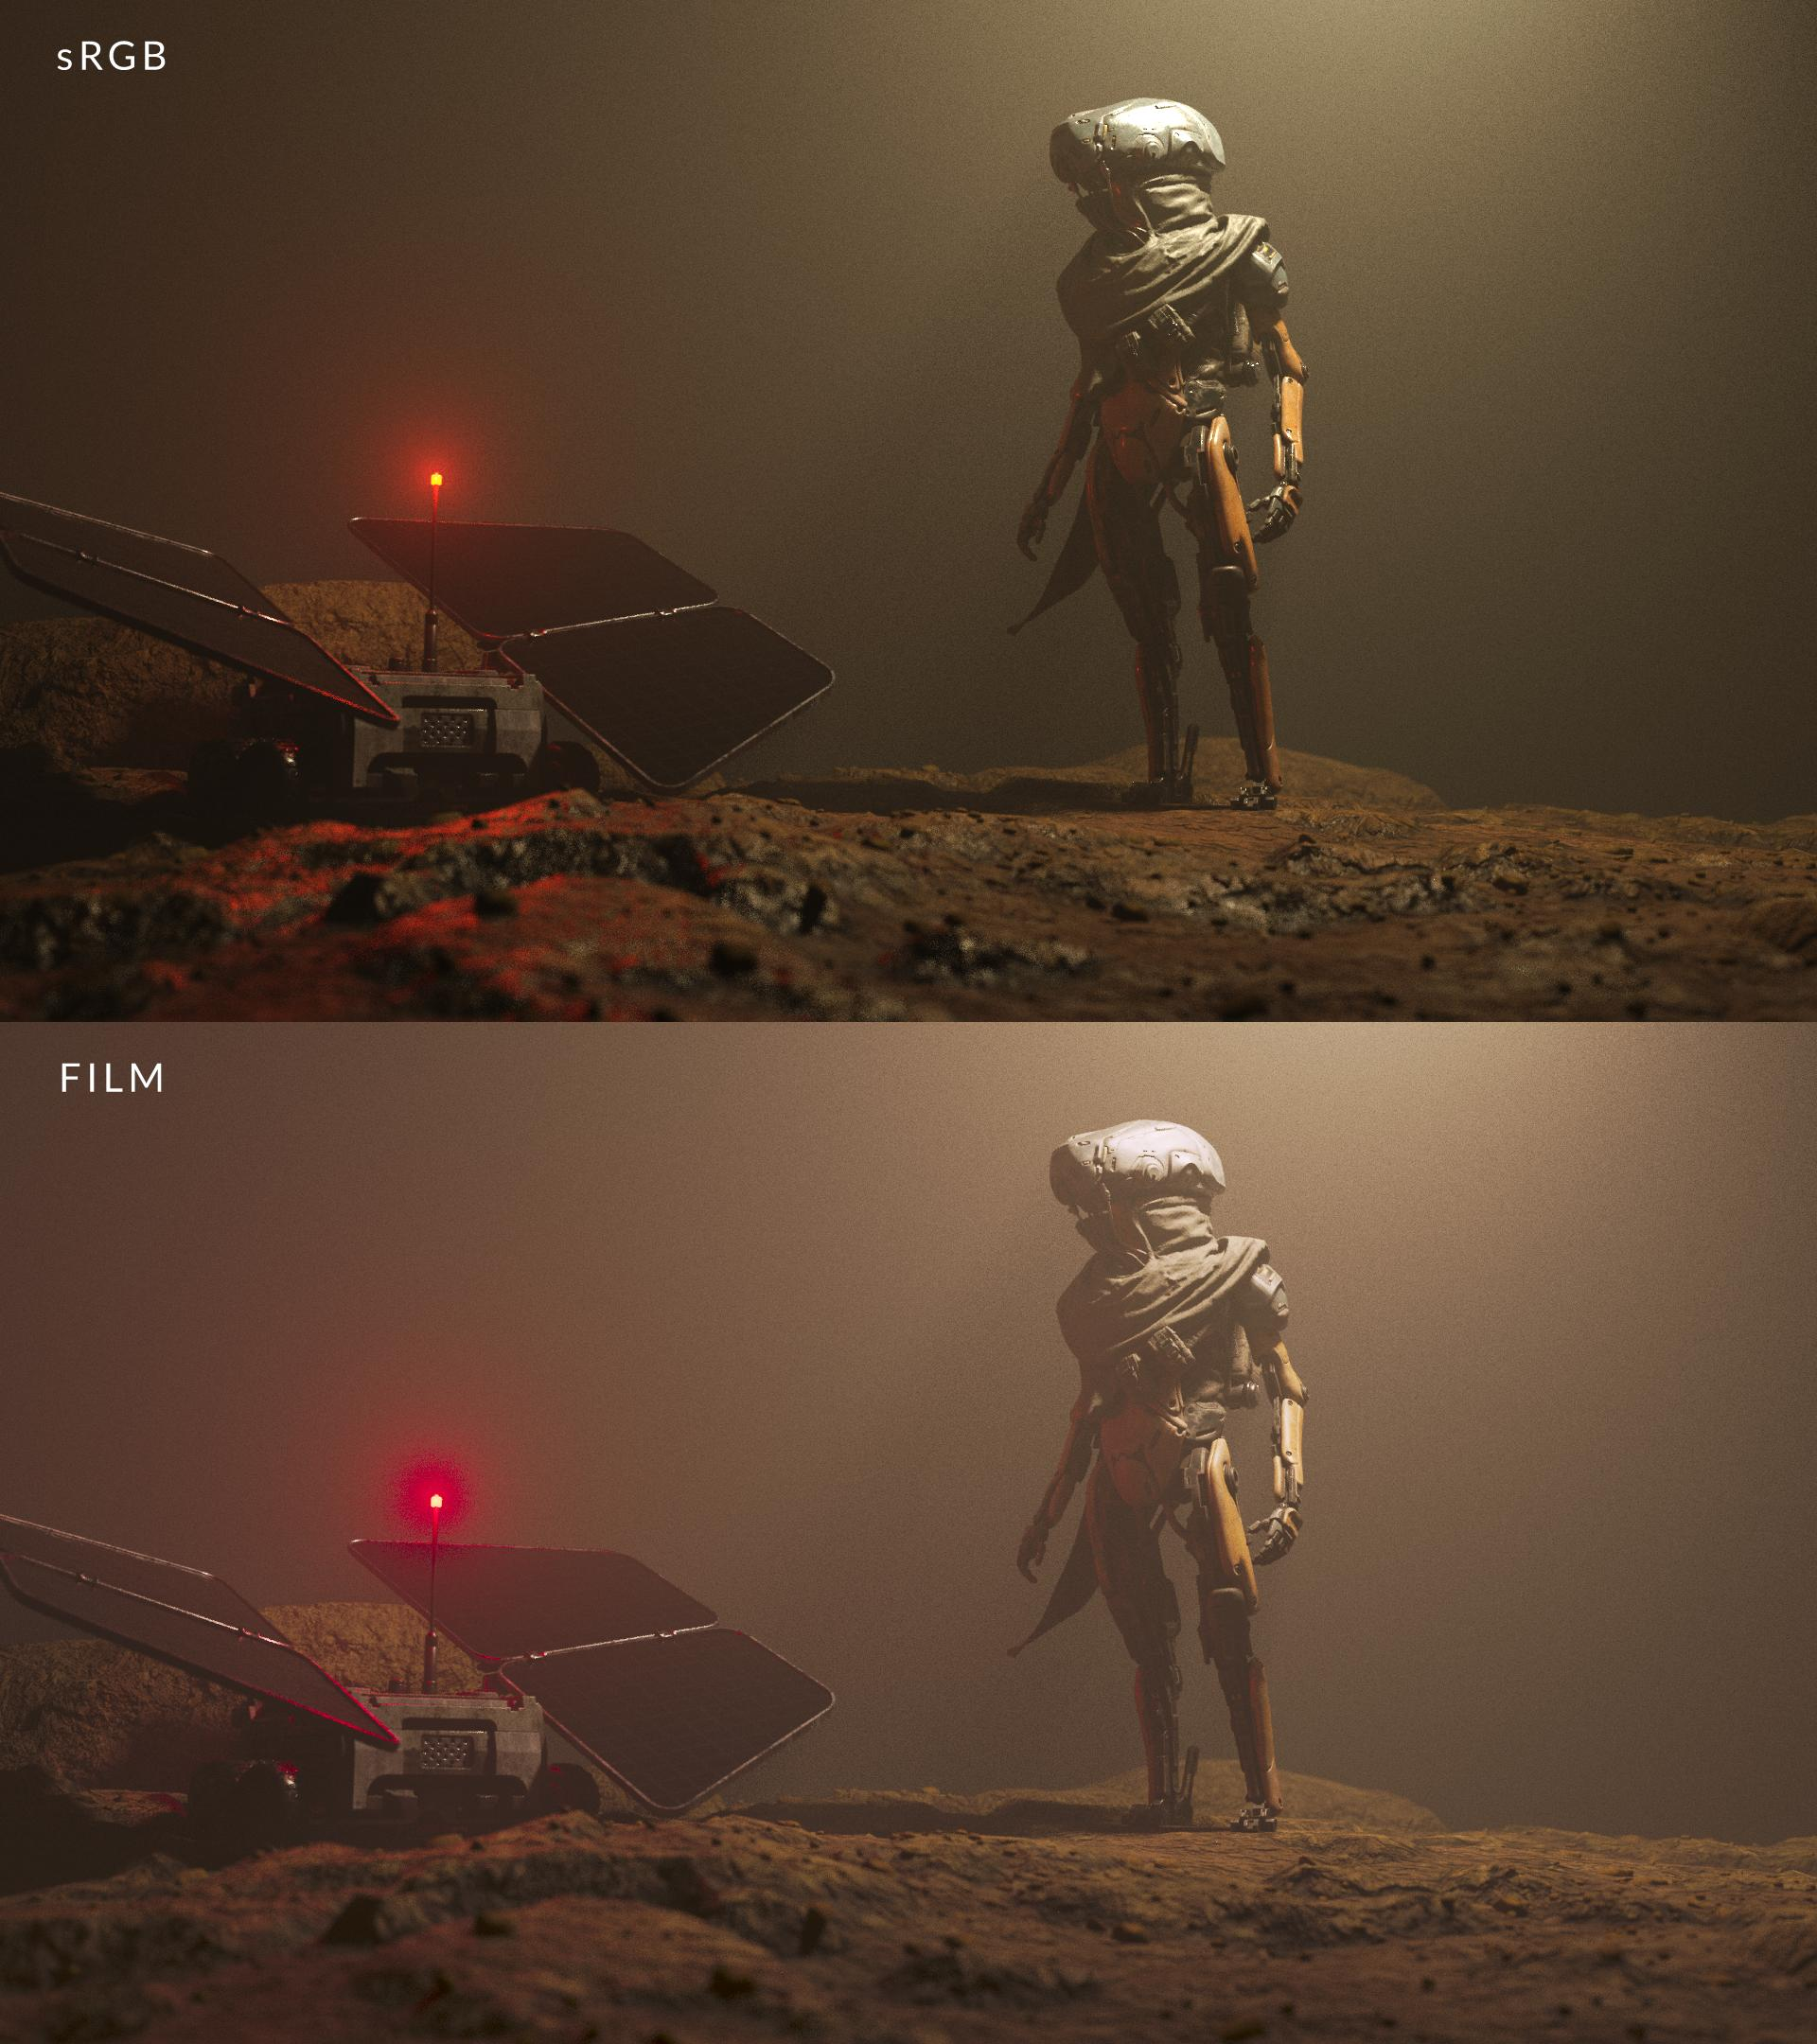 render on a monitor compared to viewing it on film